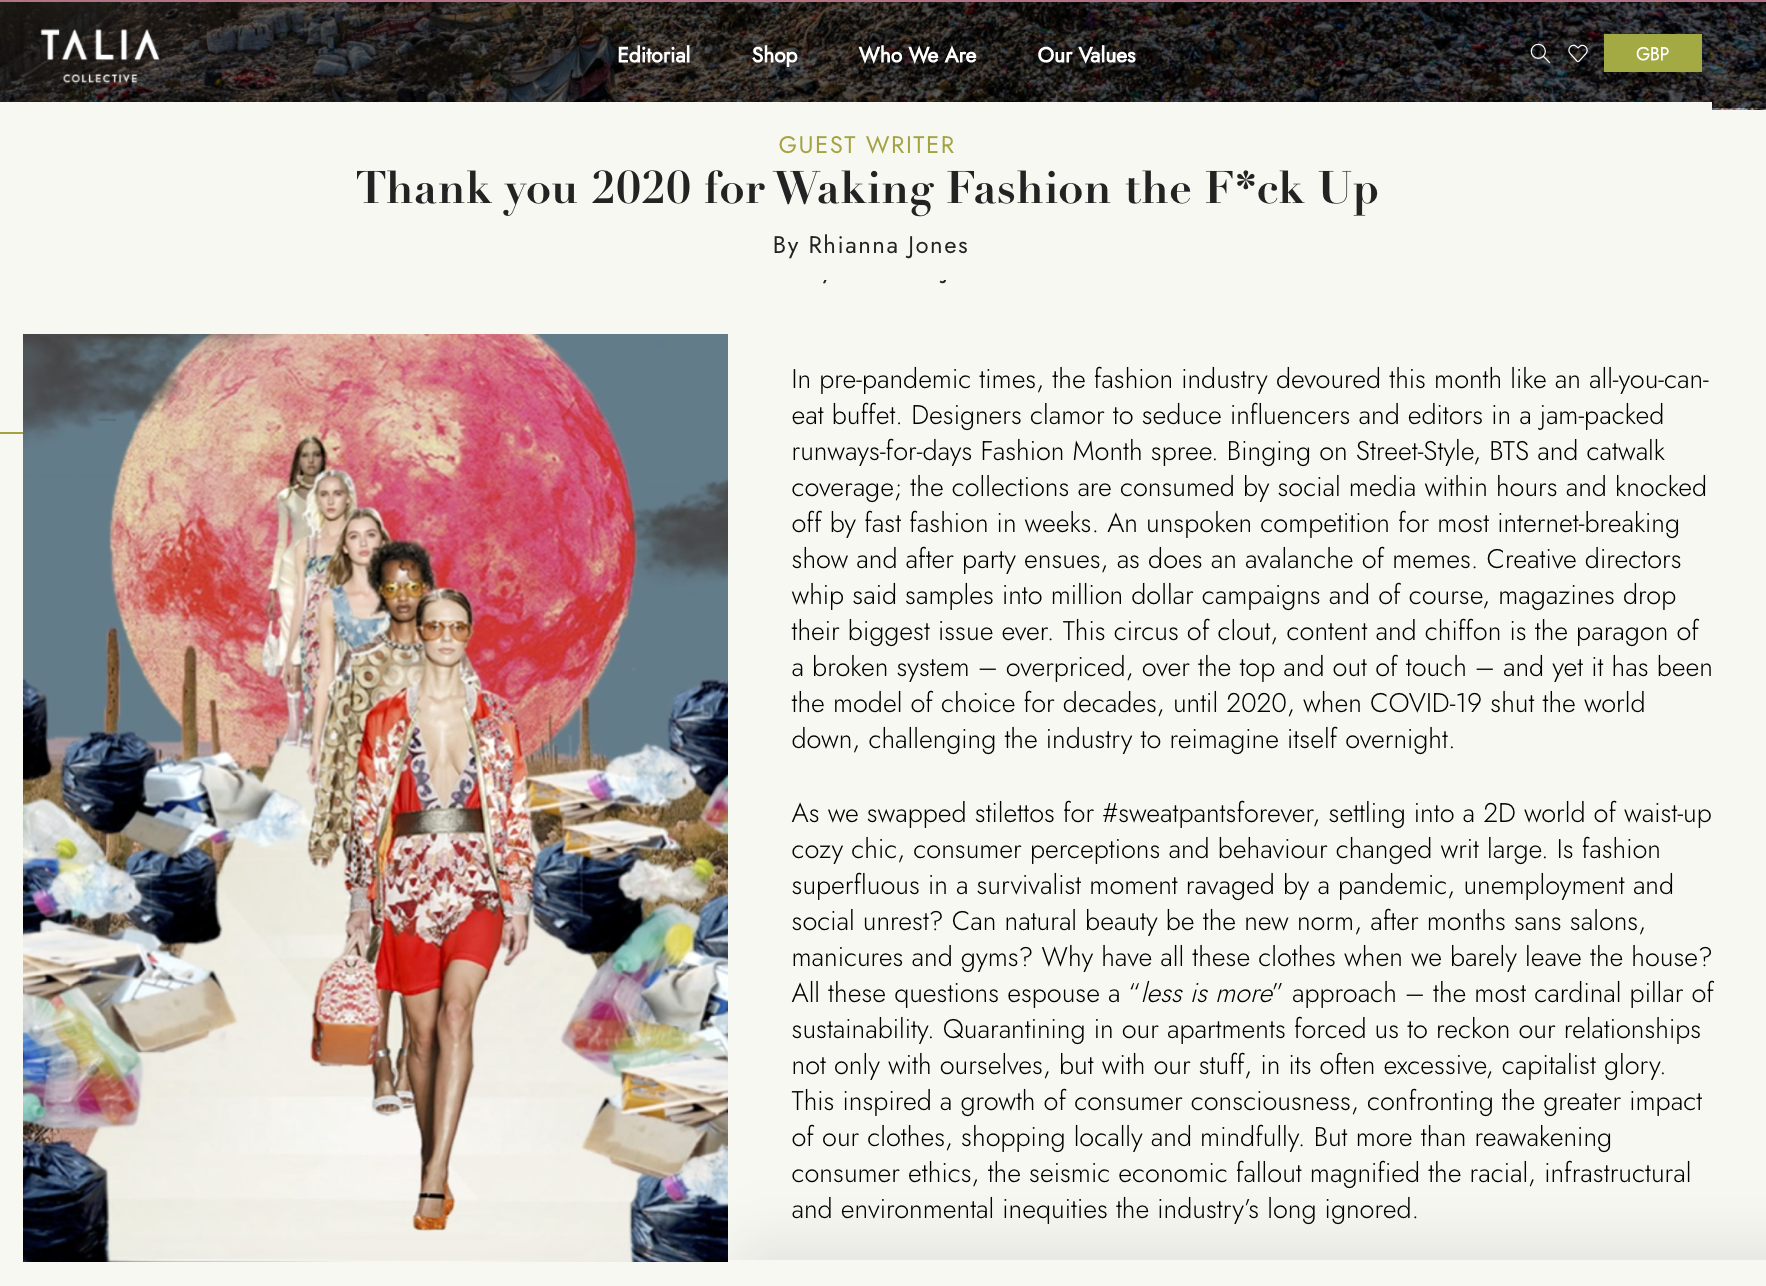 Talia Cover Story - Waking Fashion Up in 2020